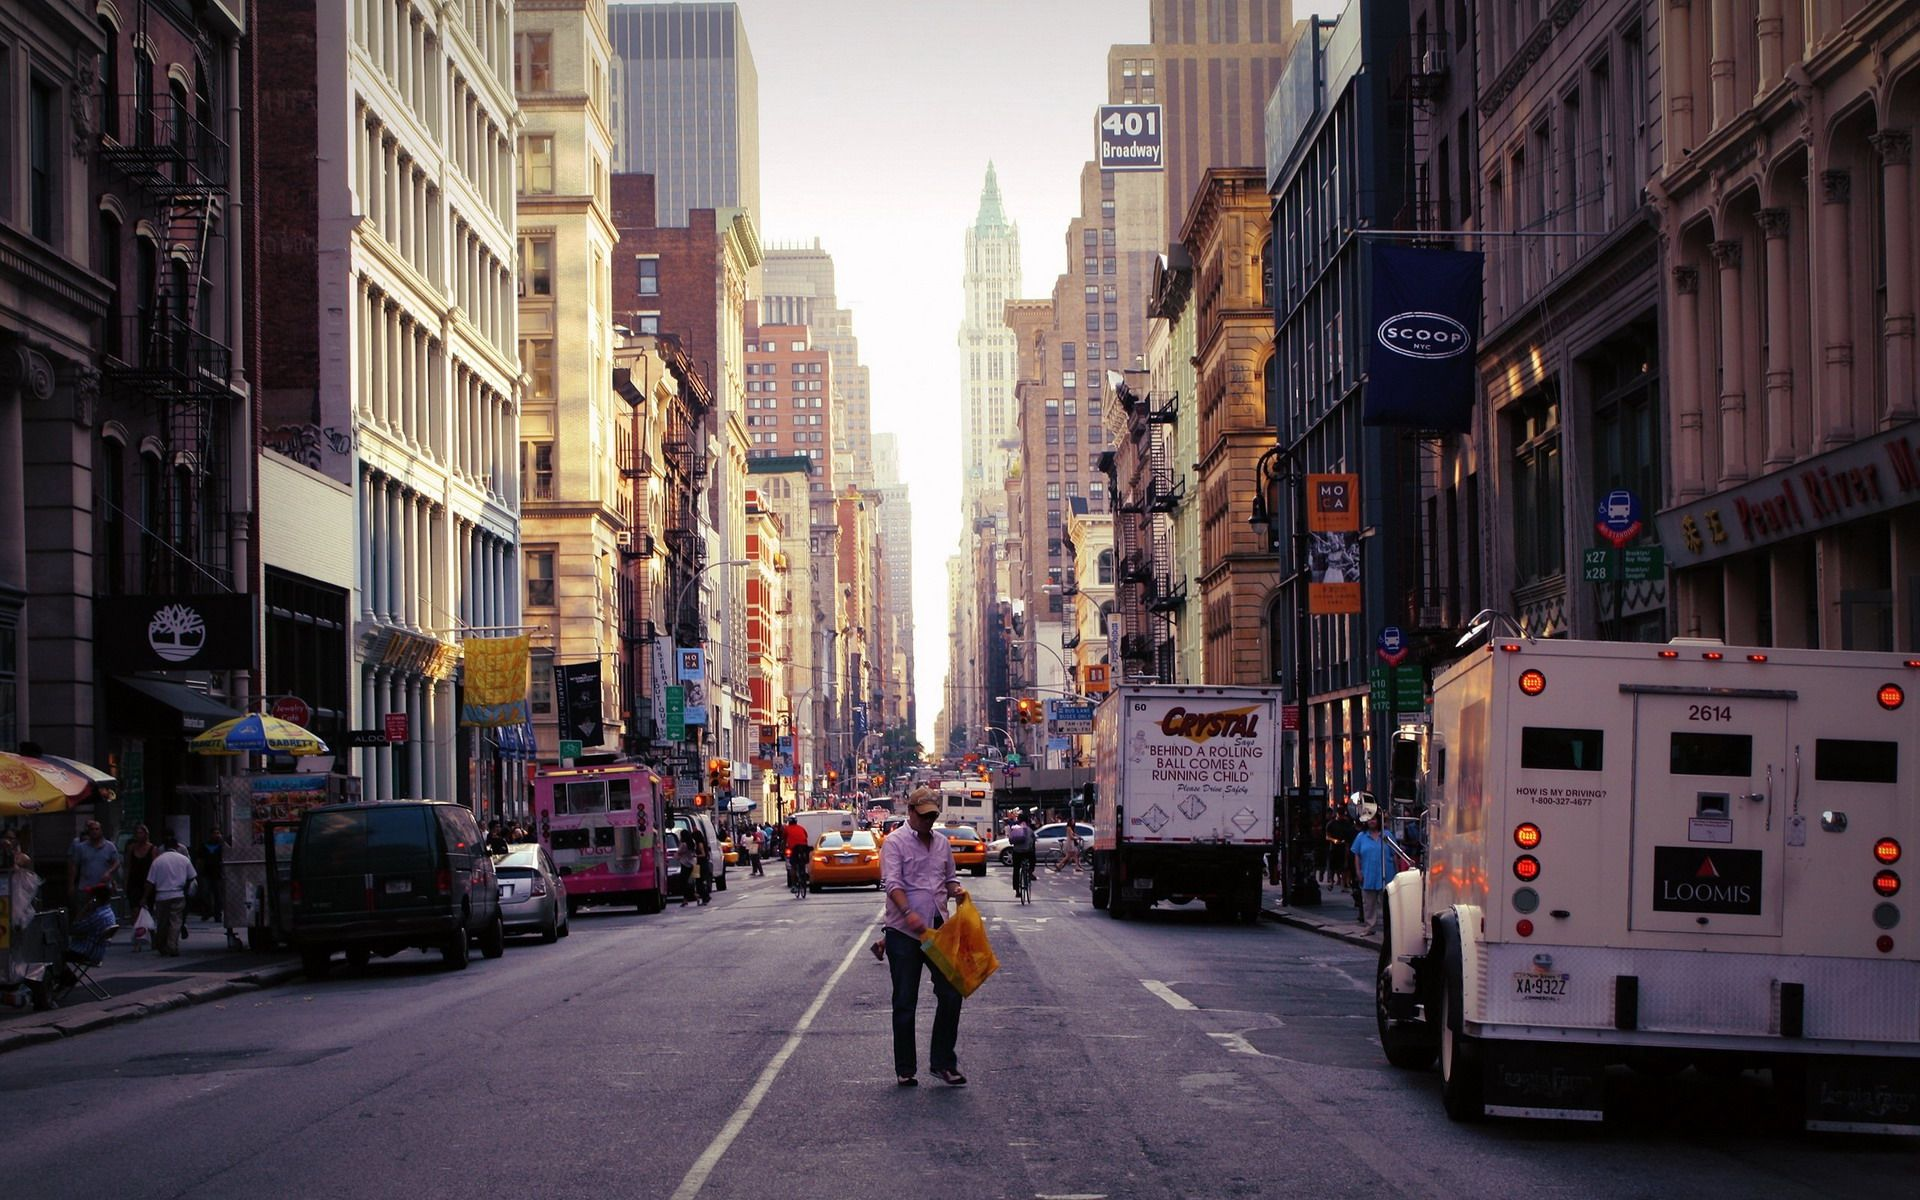 Hd Wallpaper City Street New York Wallpapers Xpx